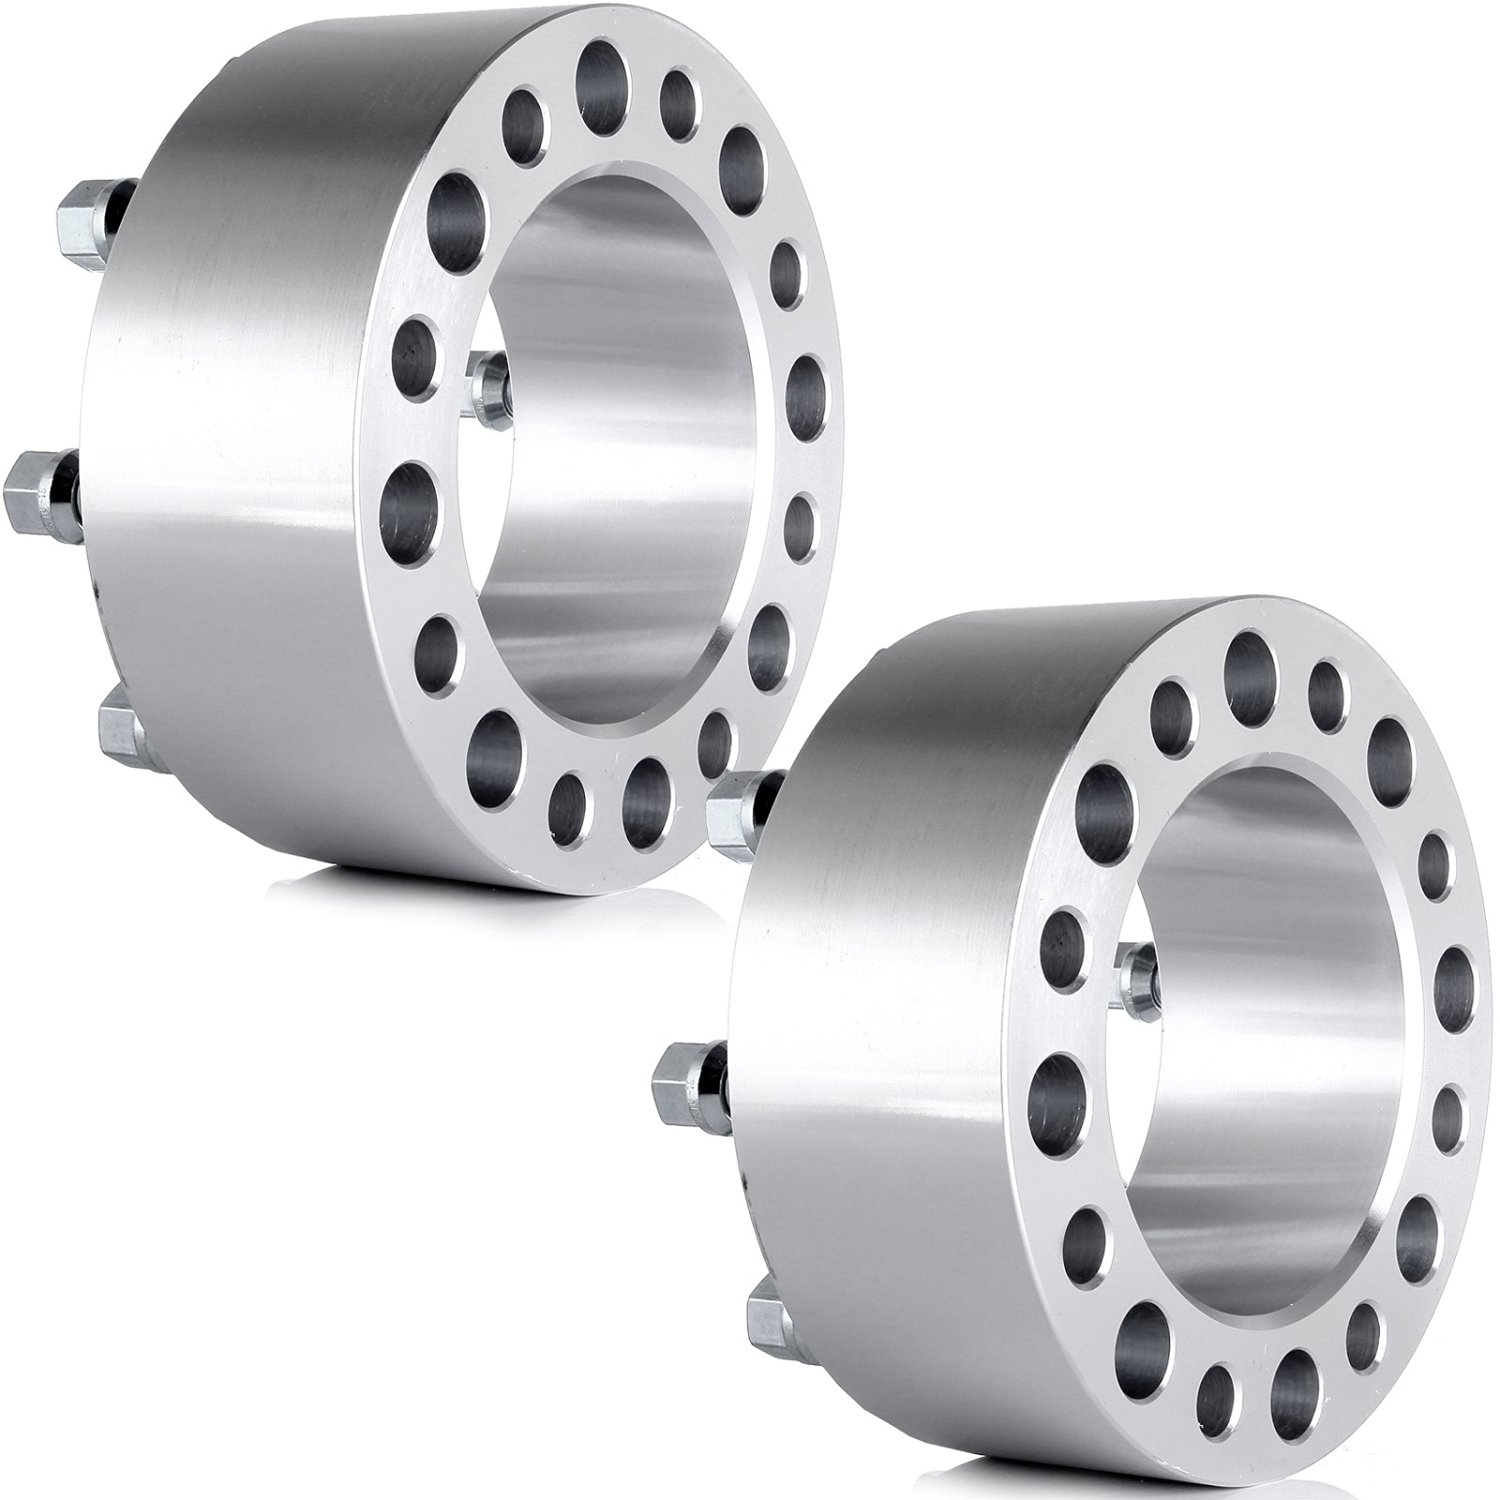 """2/"""" Ram 2004-2011 Hub Centric 2500 3500 dually Rear WHEEL SPACERS ADAPTERS"""